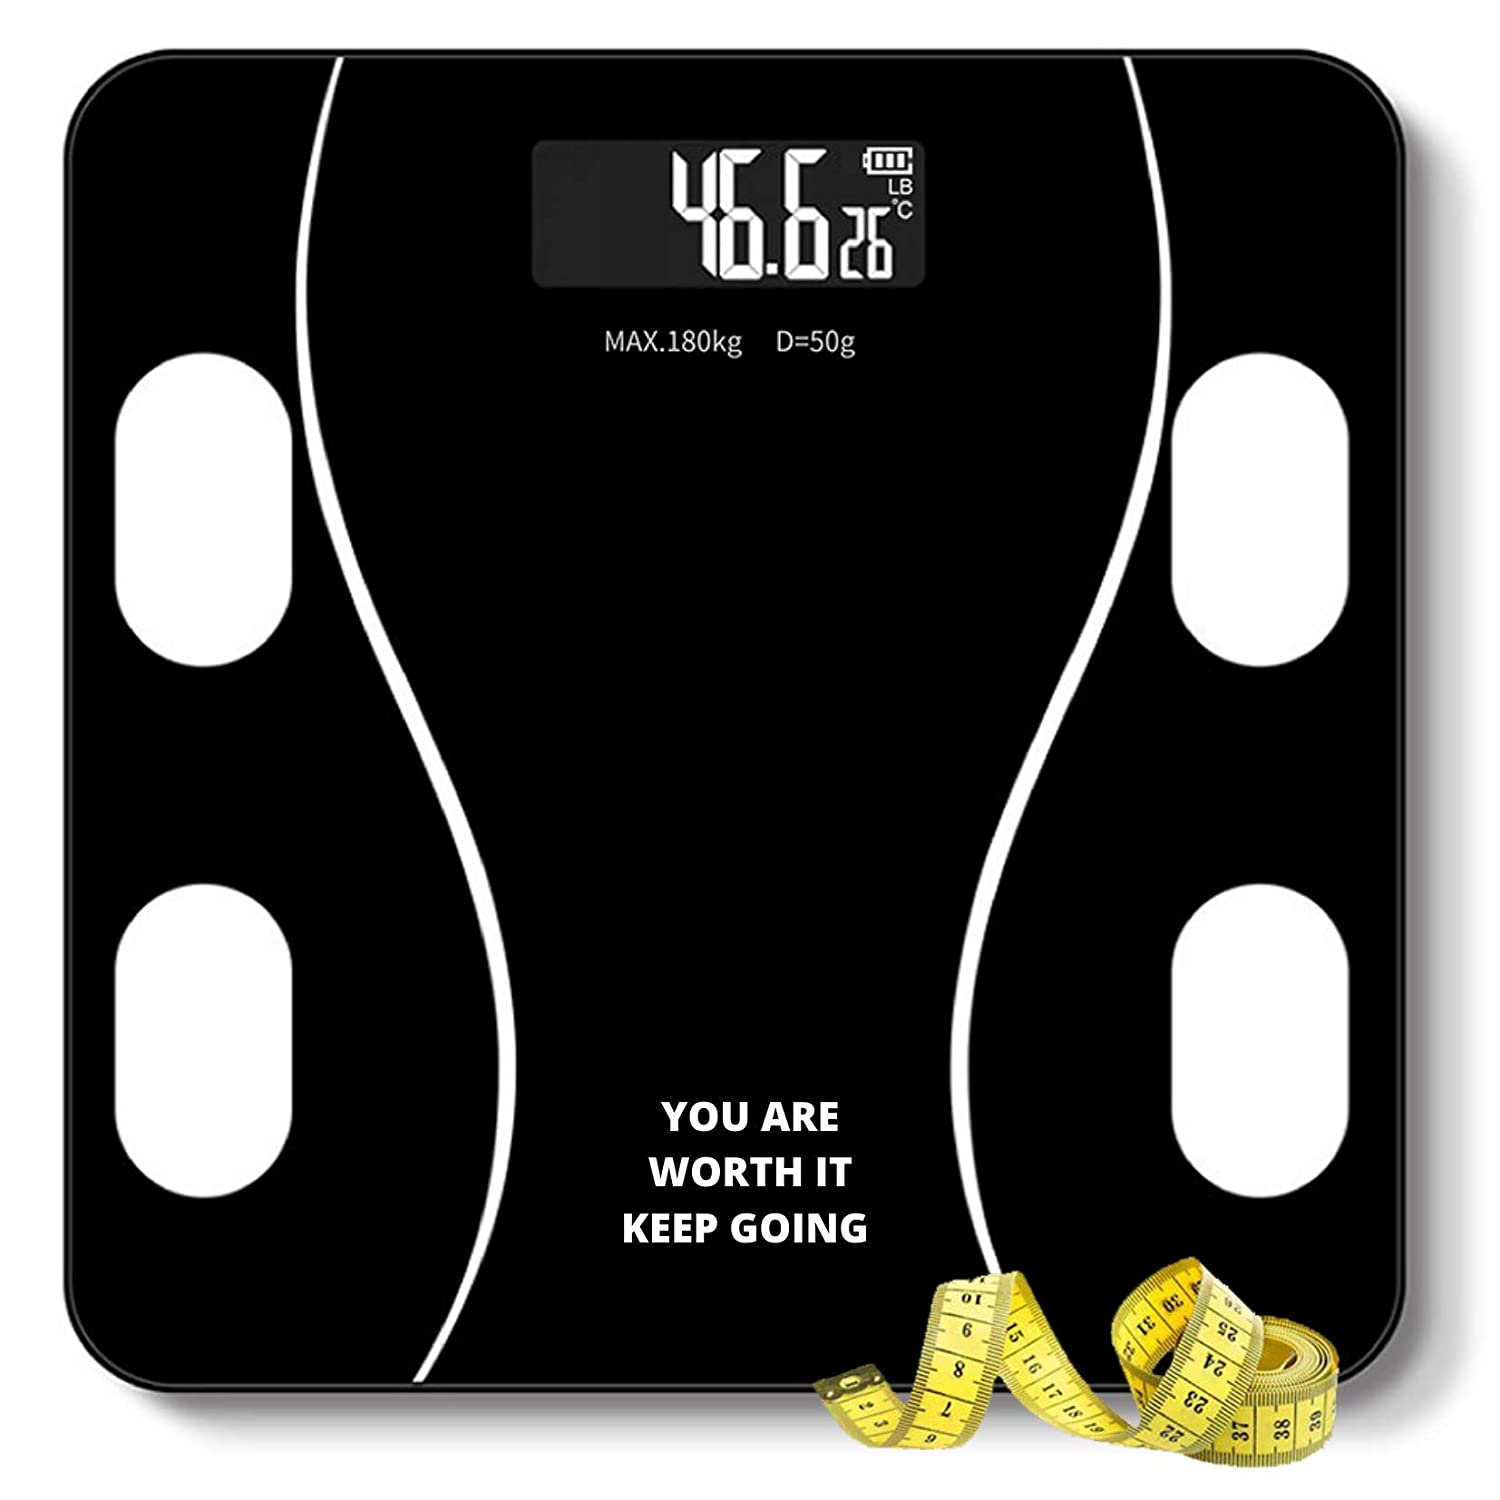 QUARK MART- India Heavy Thick Tempered Glass Lcd Display Weighing Machine